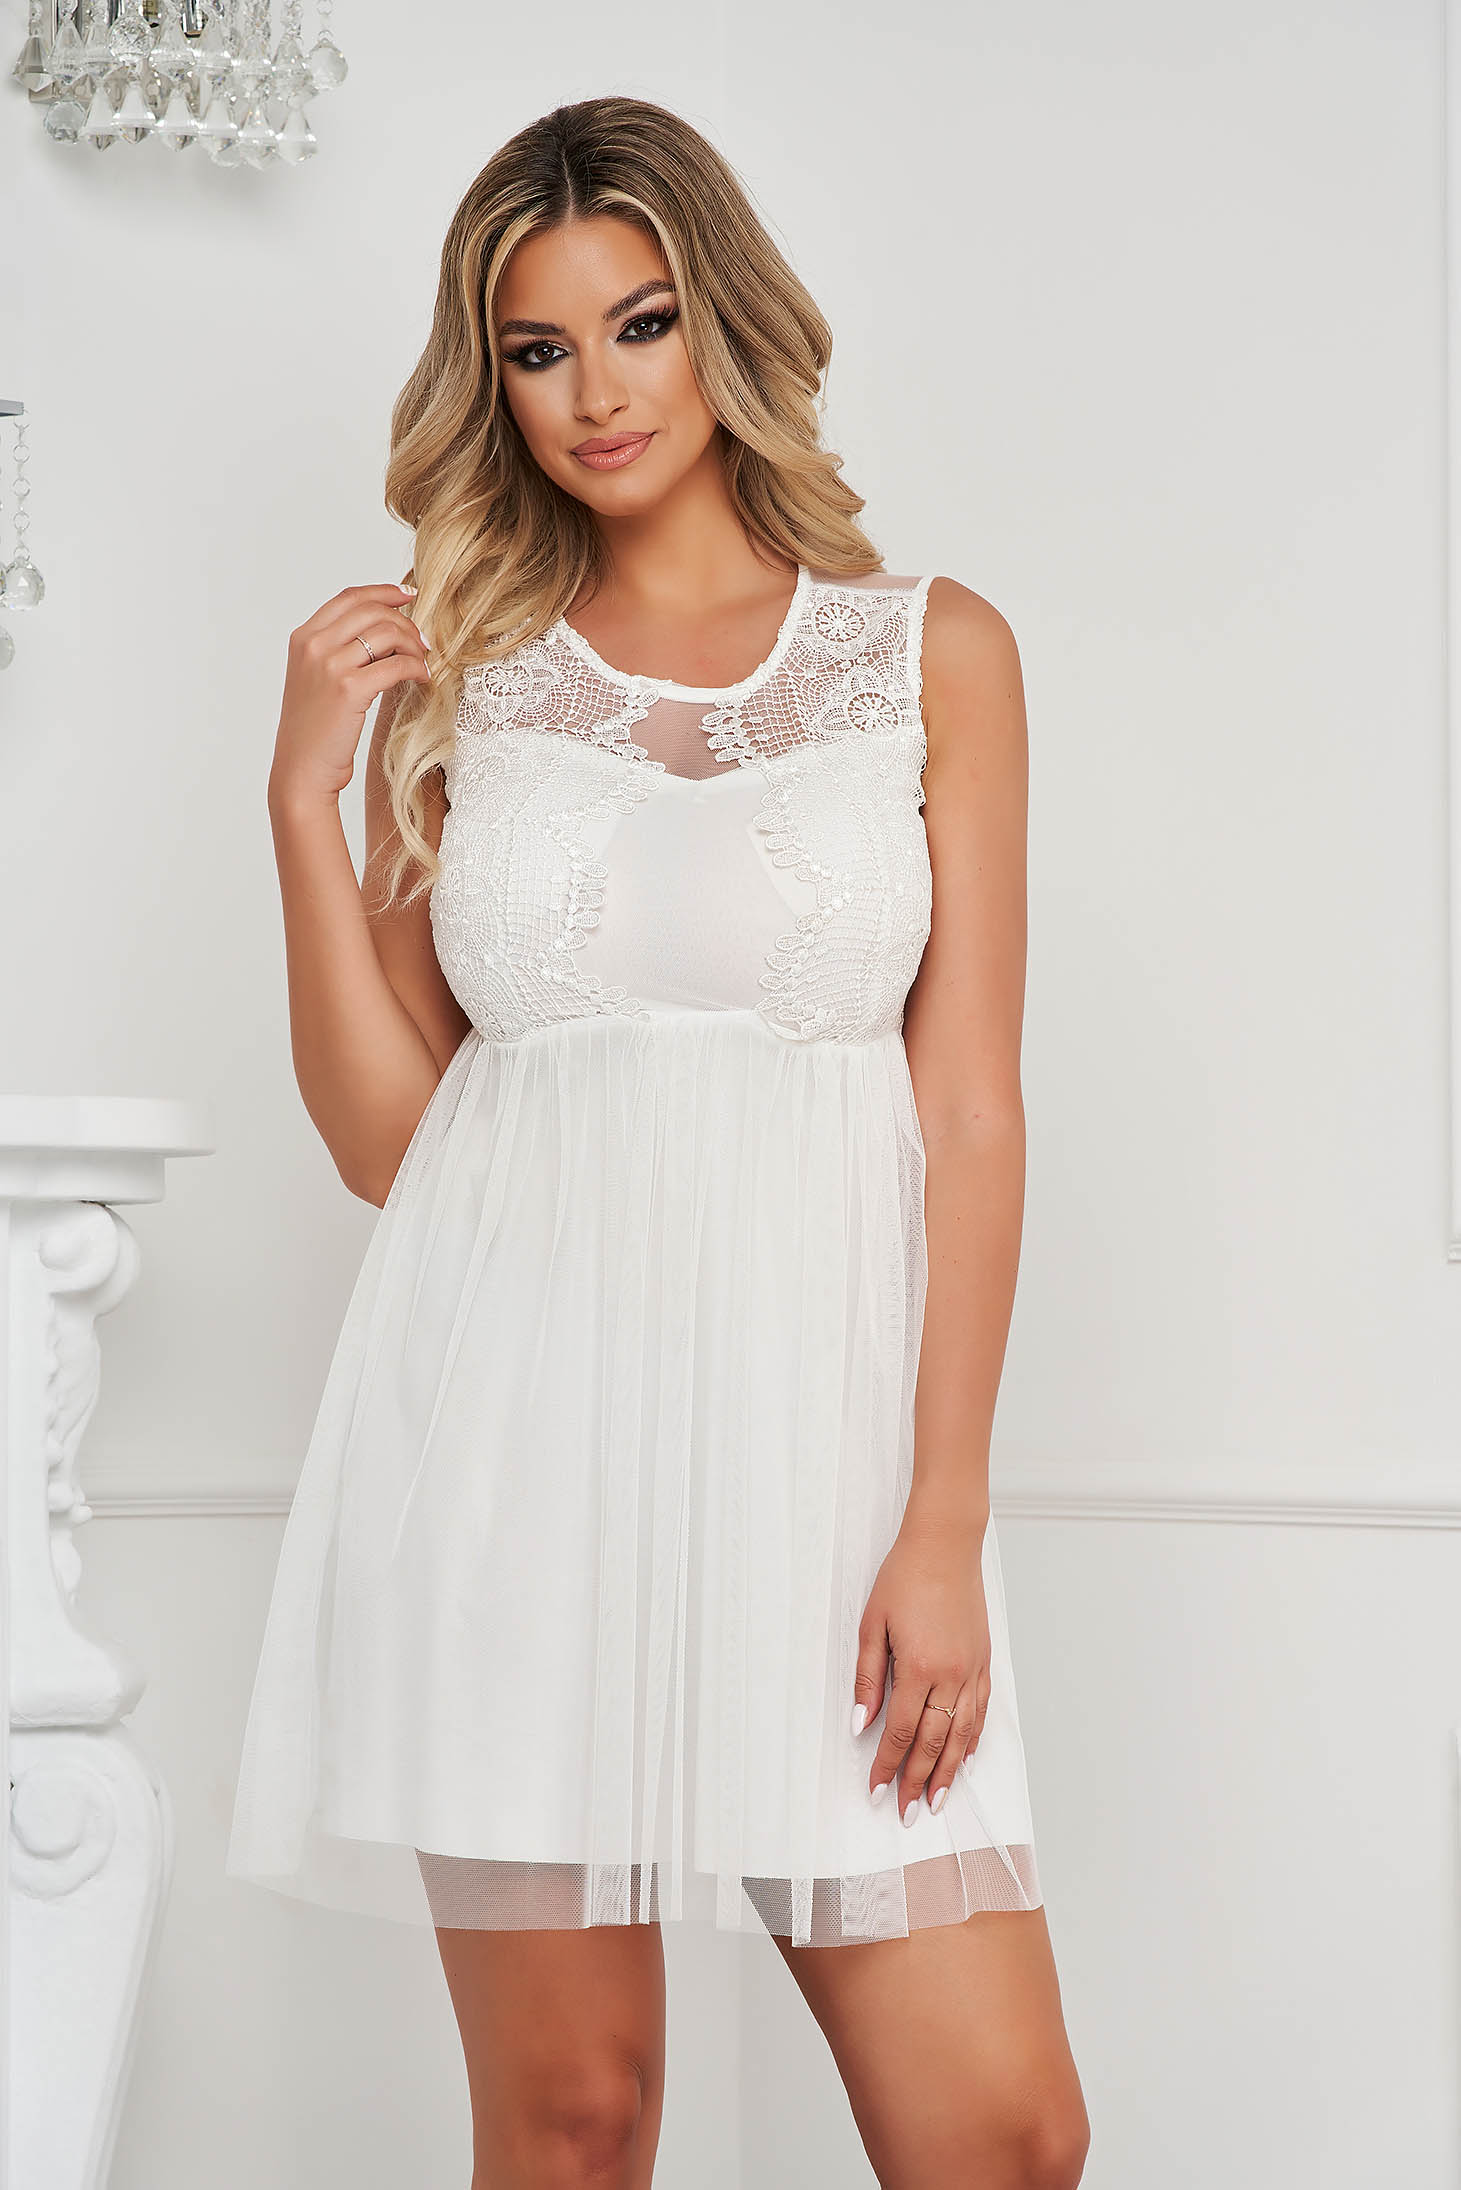 White dress short cut from tulle laced sleeveless cloche